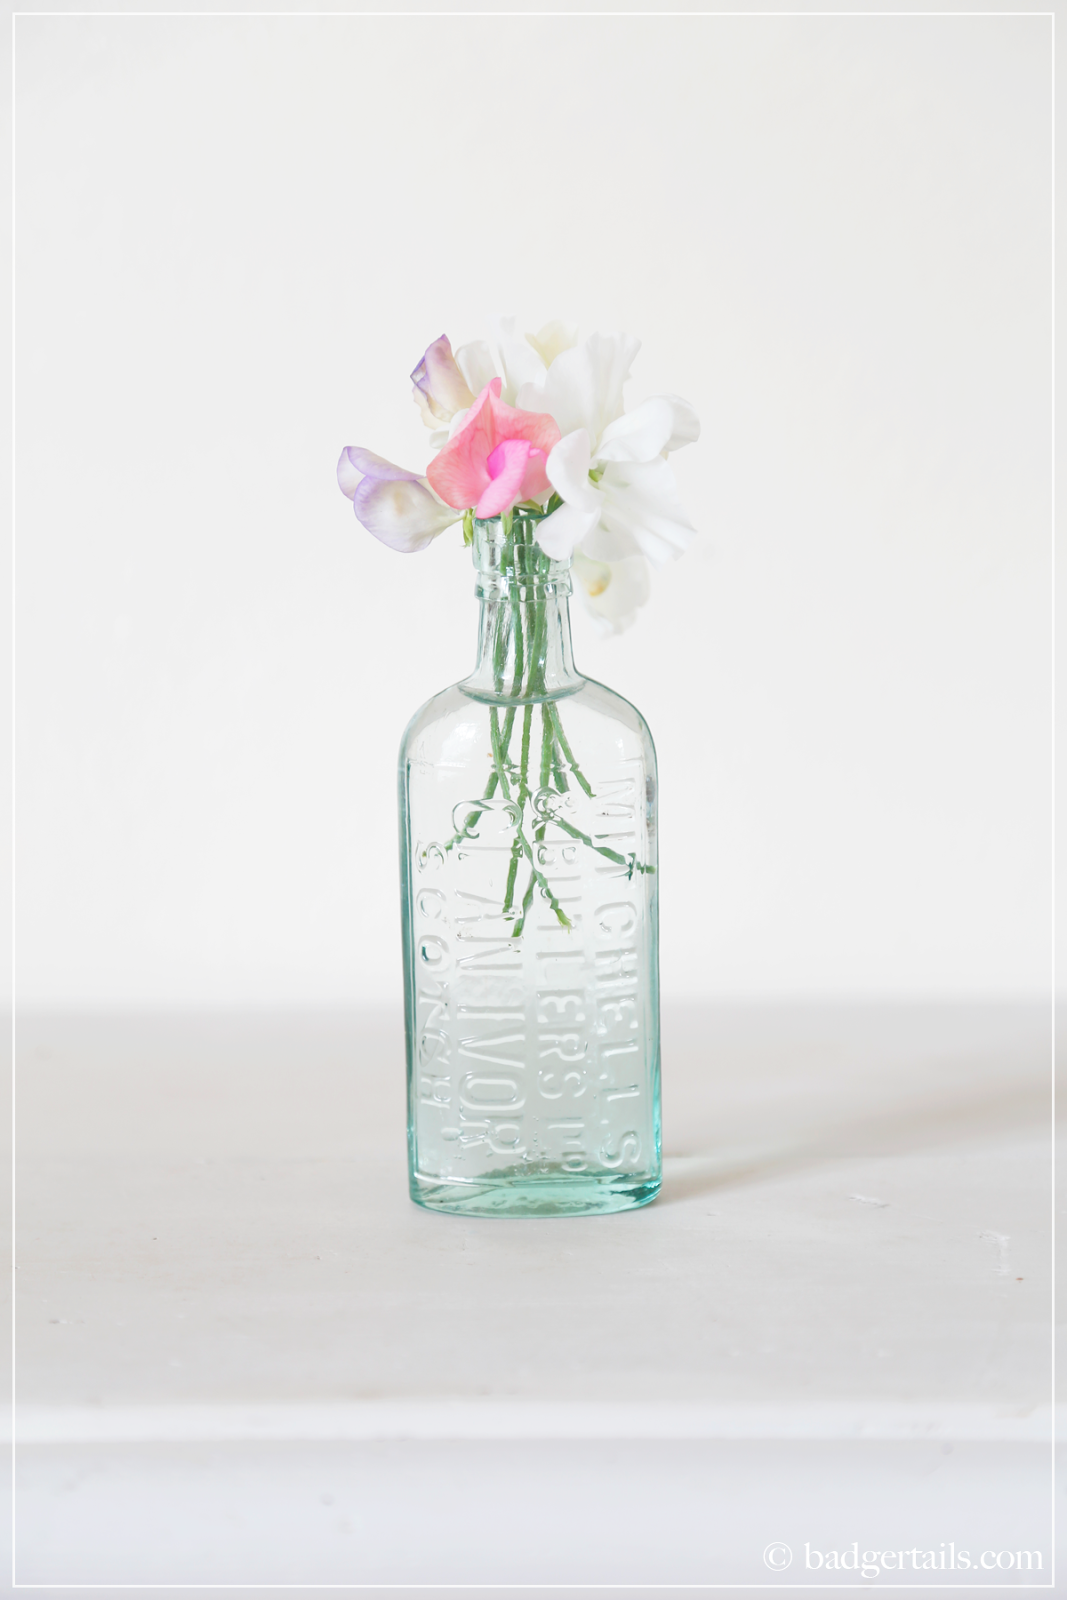 Sweet Peas in Glass Bottle on Badgertails.com